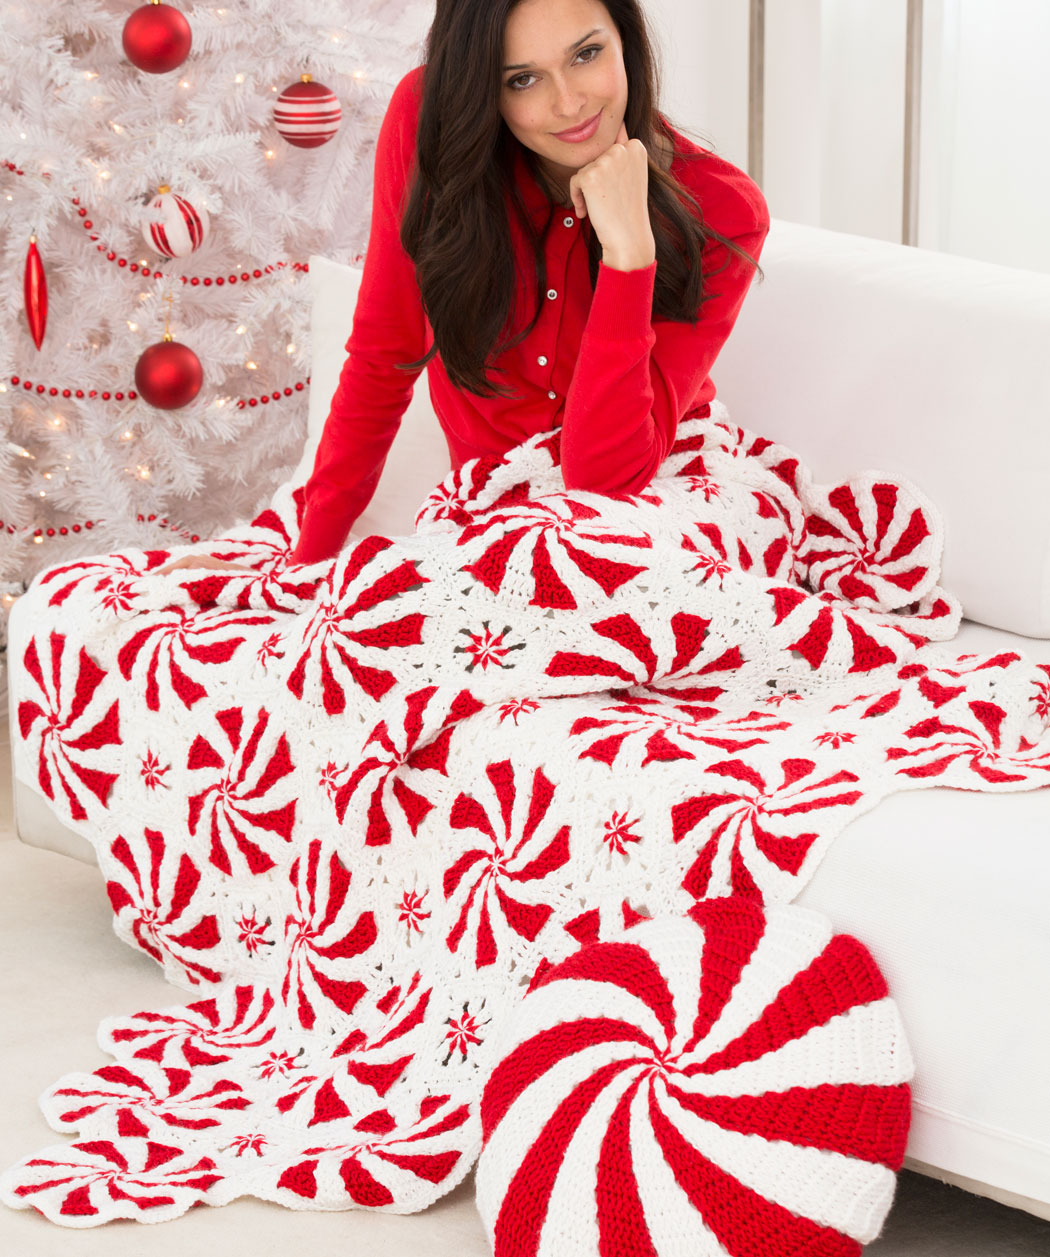 Red Heart Crochet Patterns peppermint throw and pillow crochet pattern loyafbg